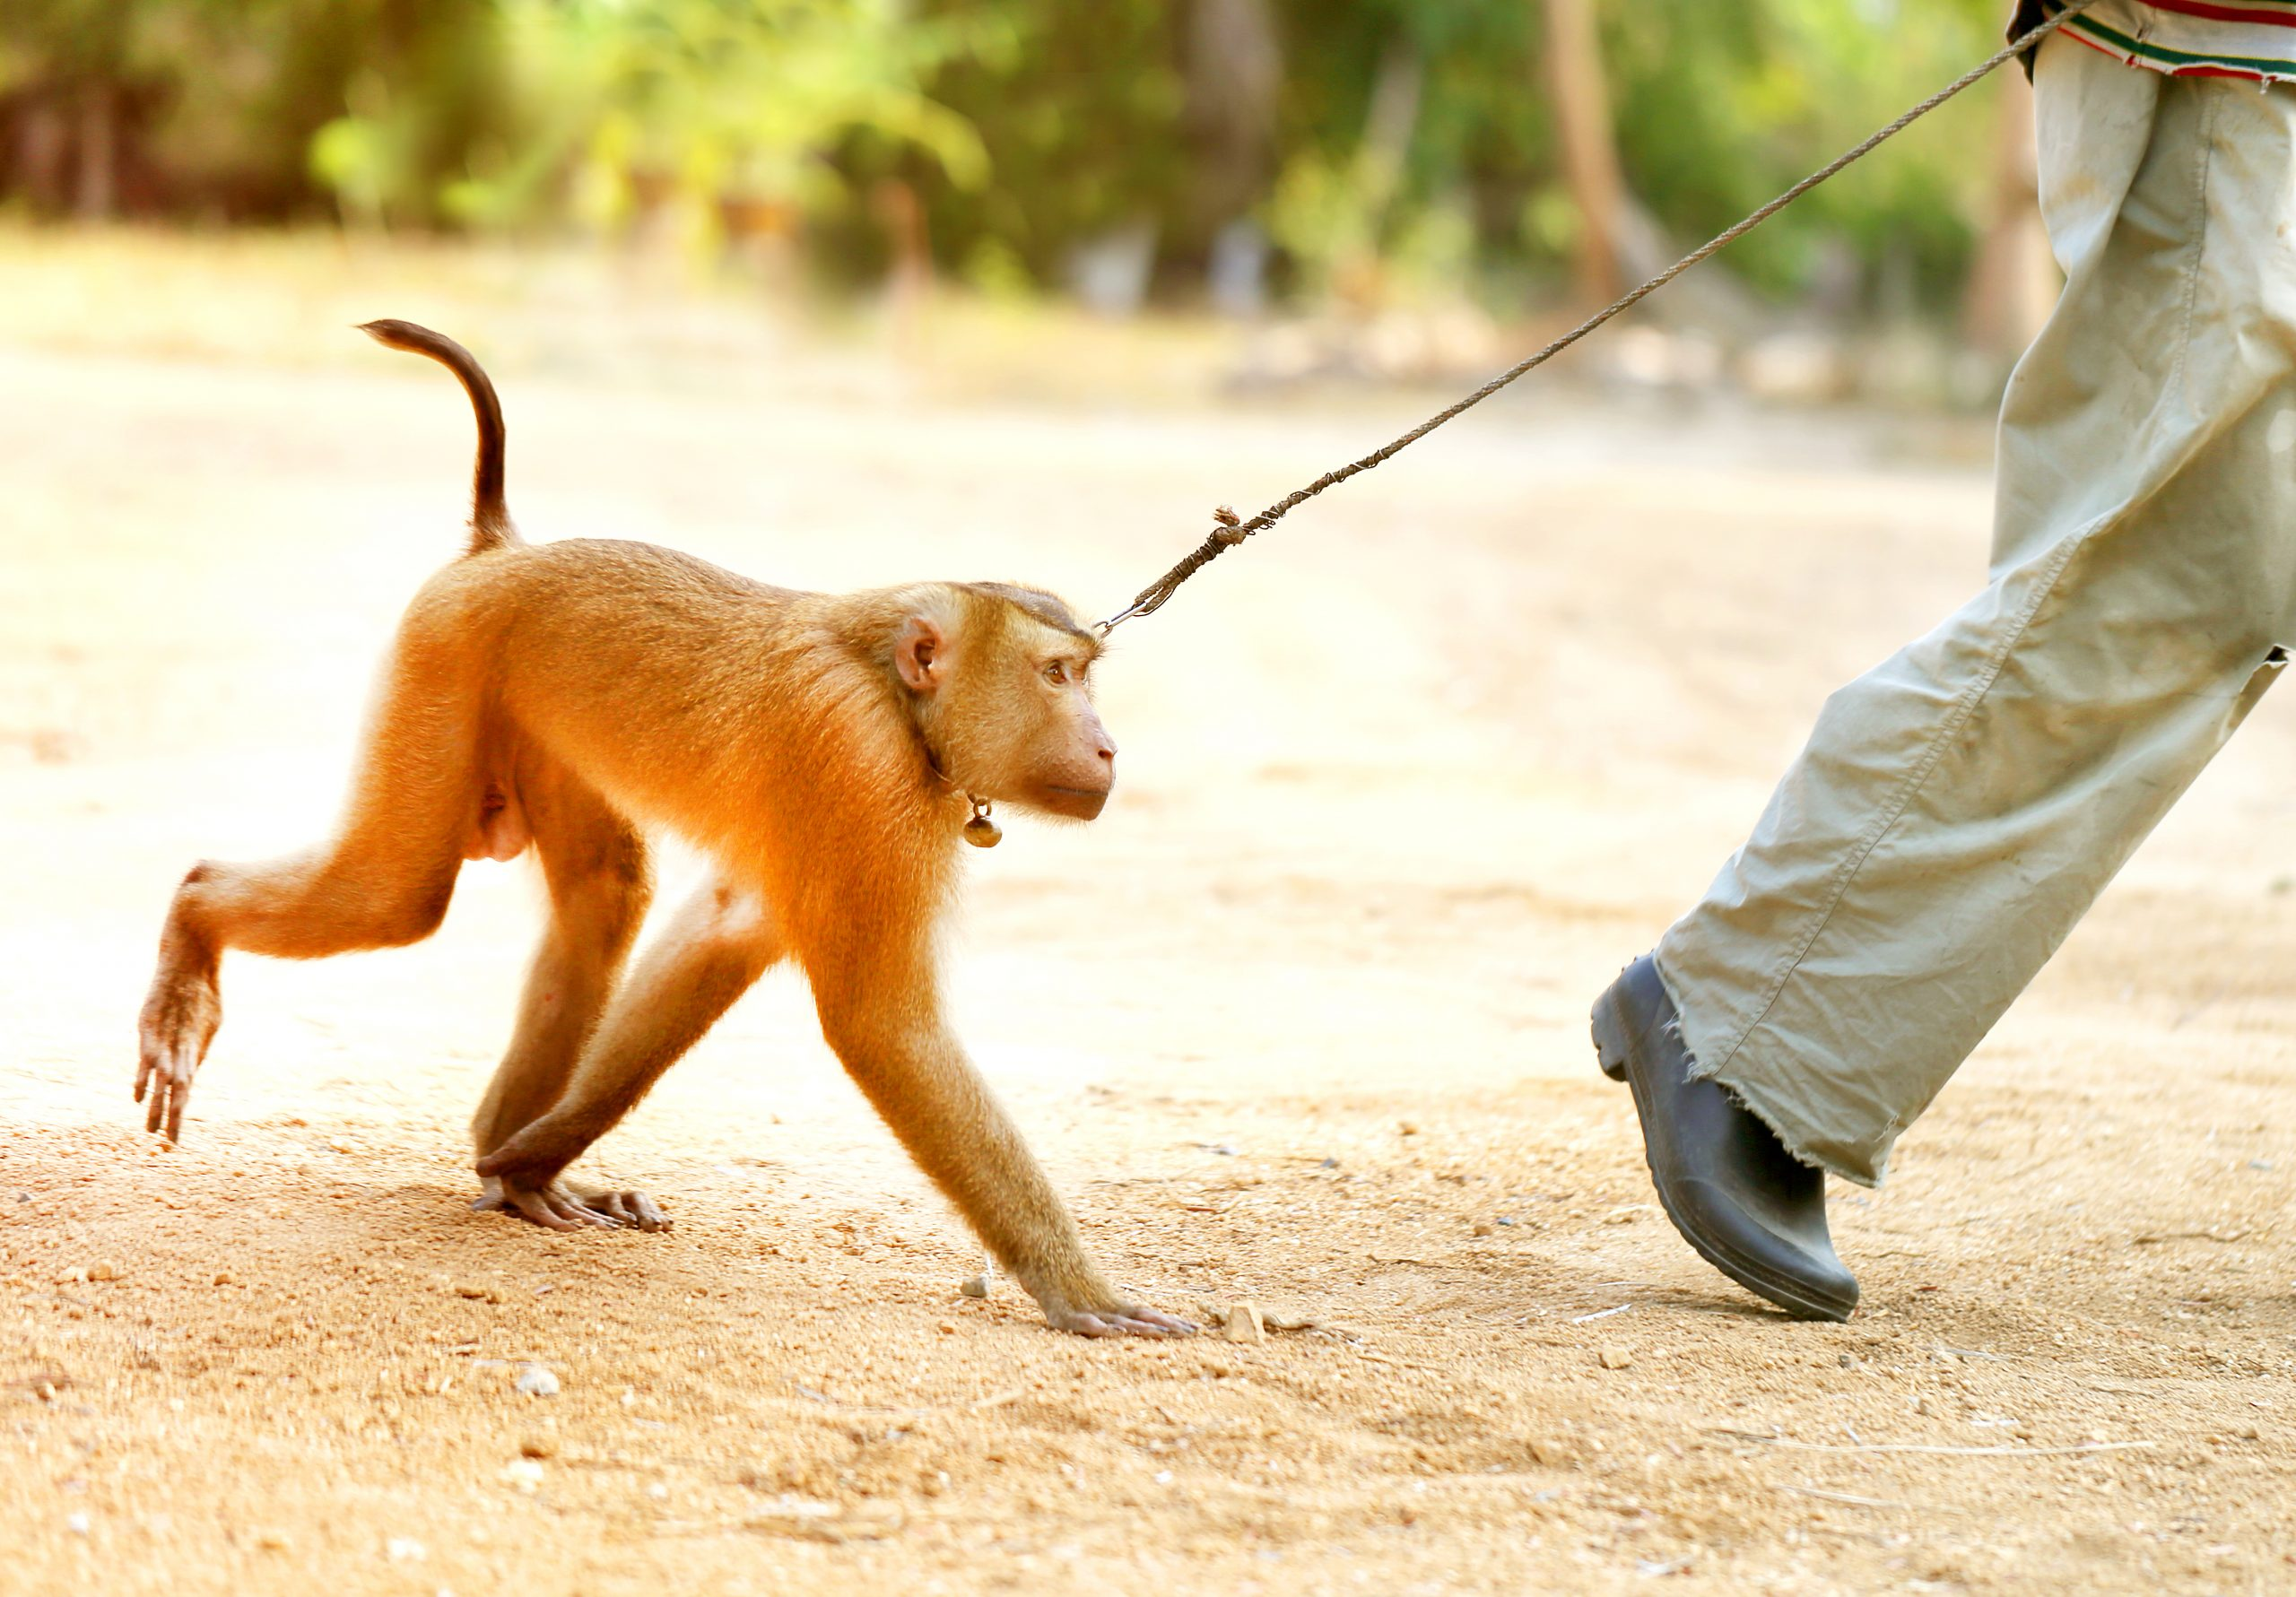 monkey on leash